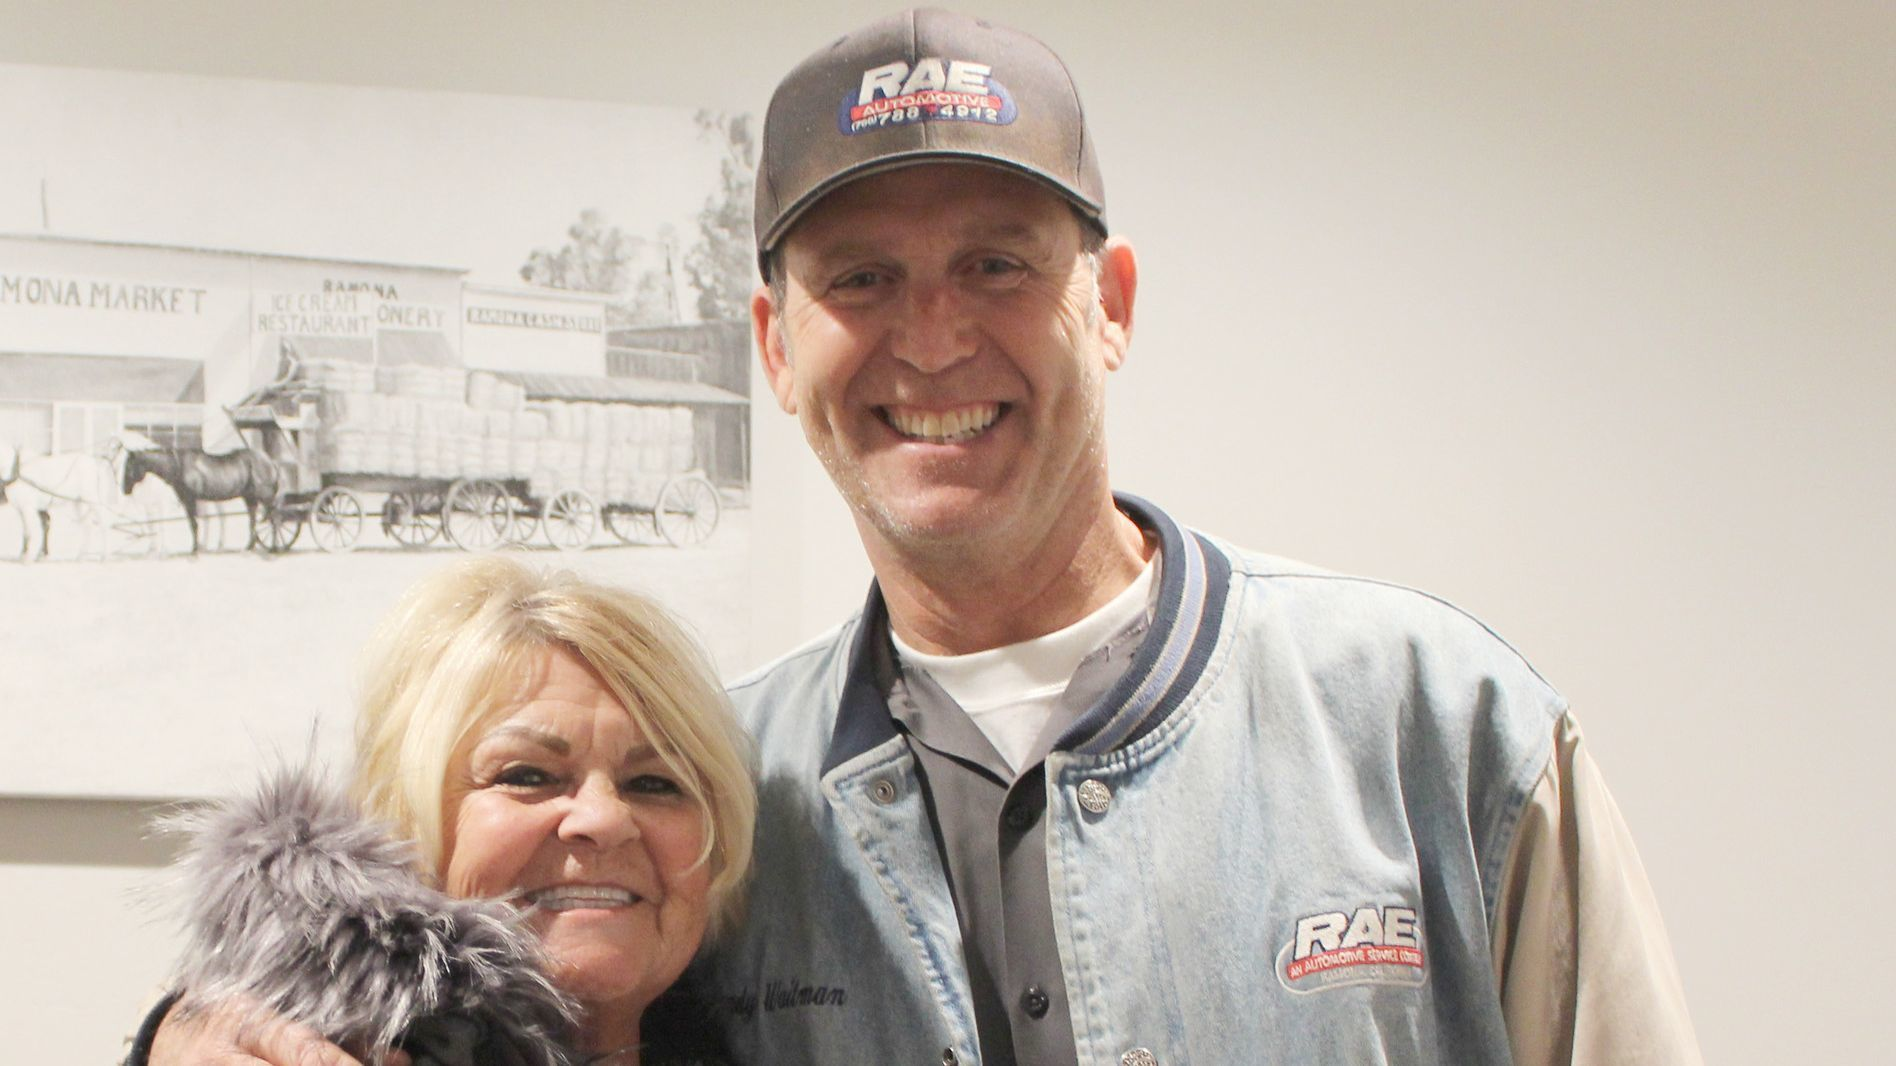 Sally Westbrook, chamber past president, visits with Randy Waitman of R.A.E. Automotive and Randy Waitman Motorsports.